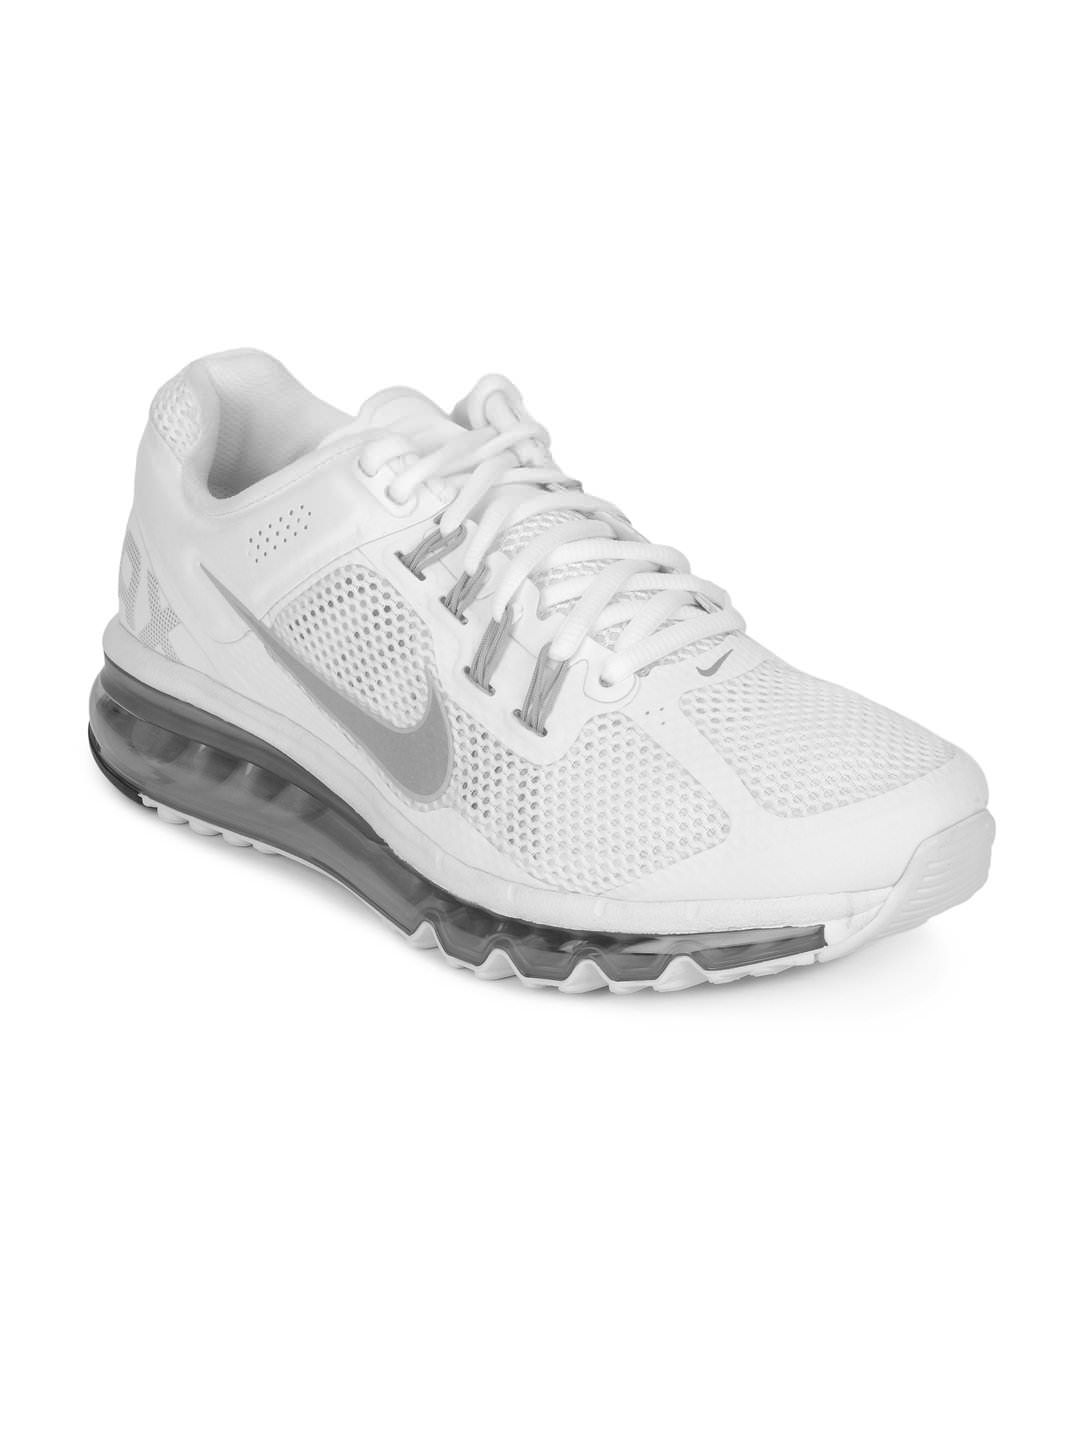 Stylish most nike sneakers photo